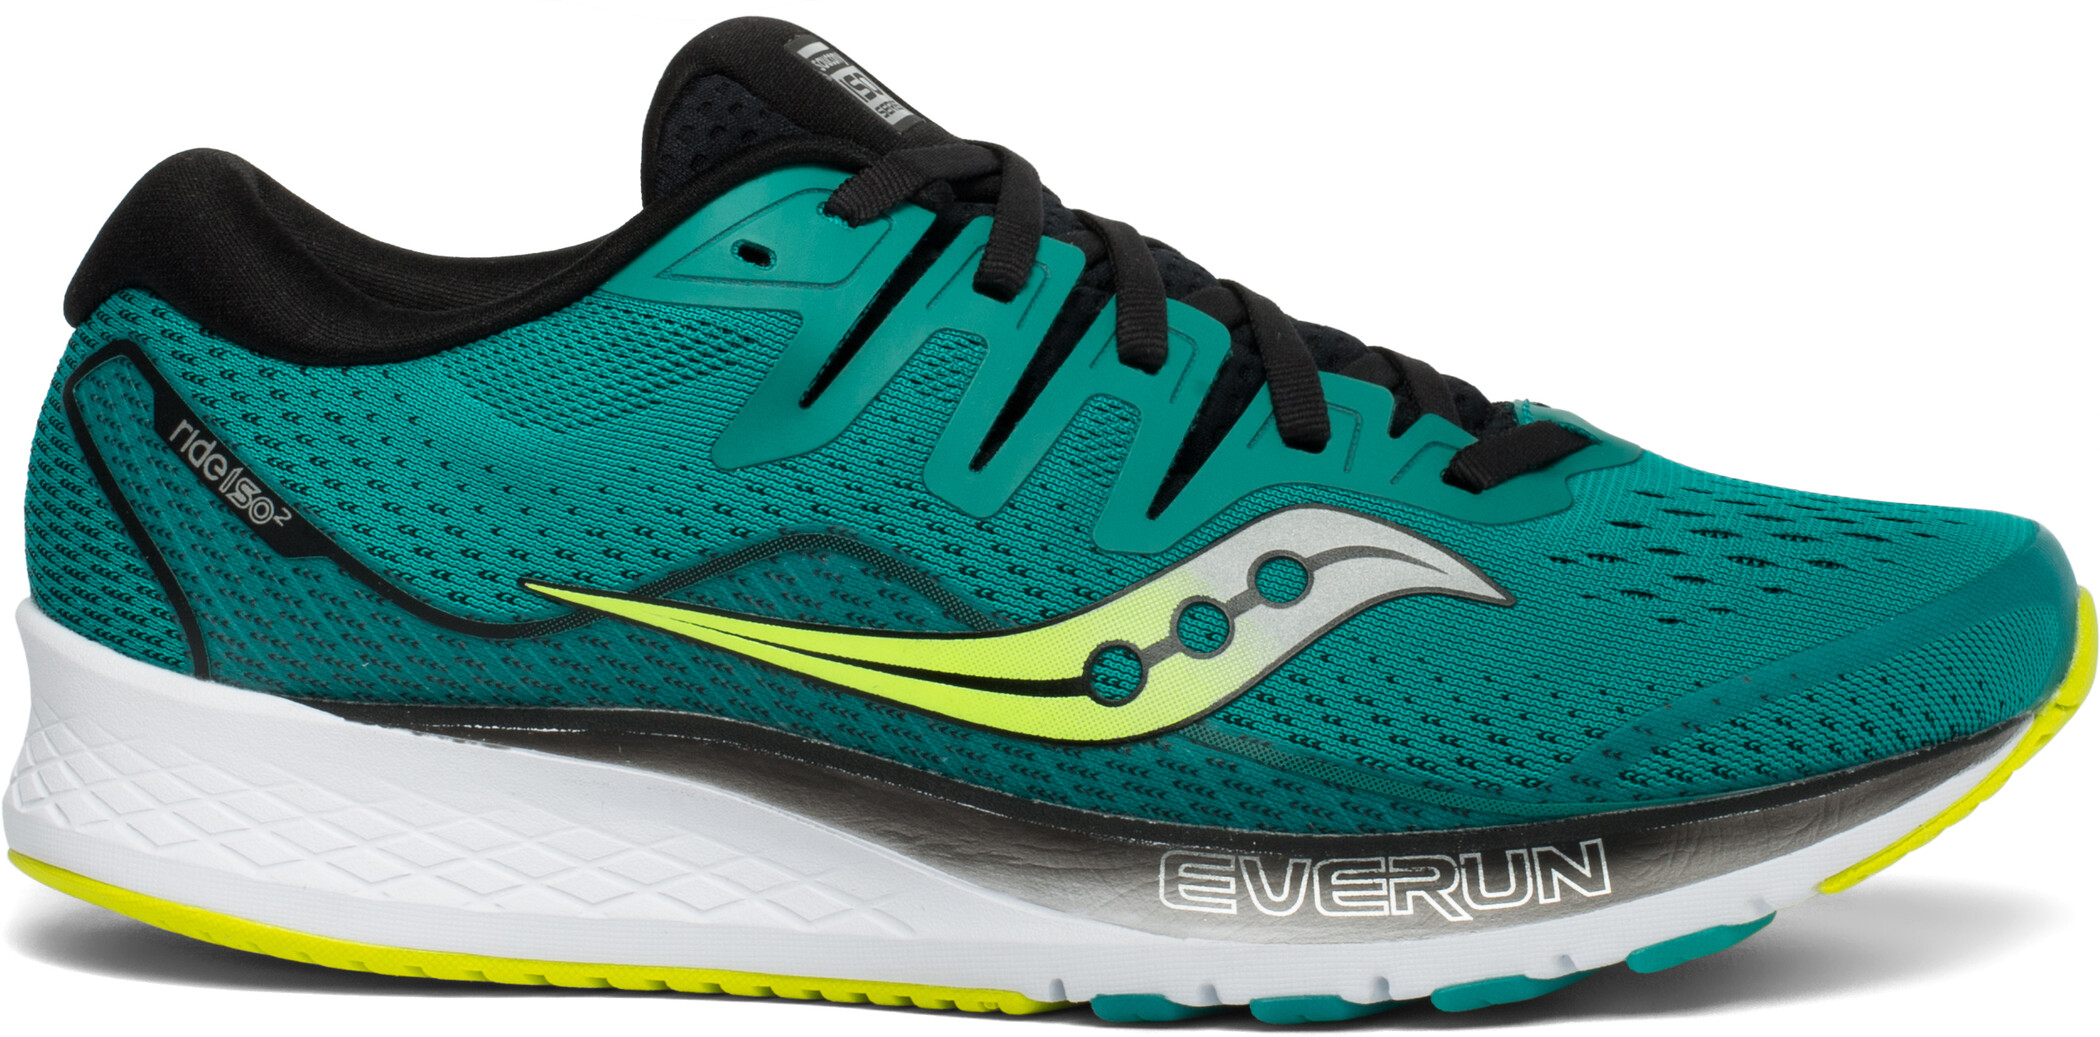 saucony Ride ISO 2 Shoes Men, teal/black (2019) | Running shoes